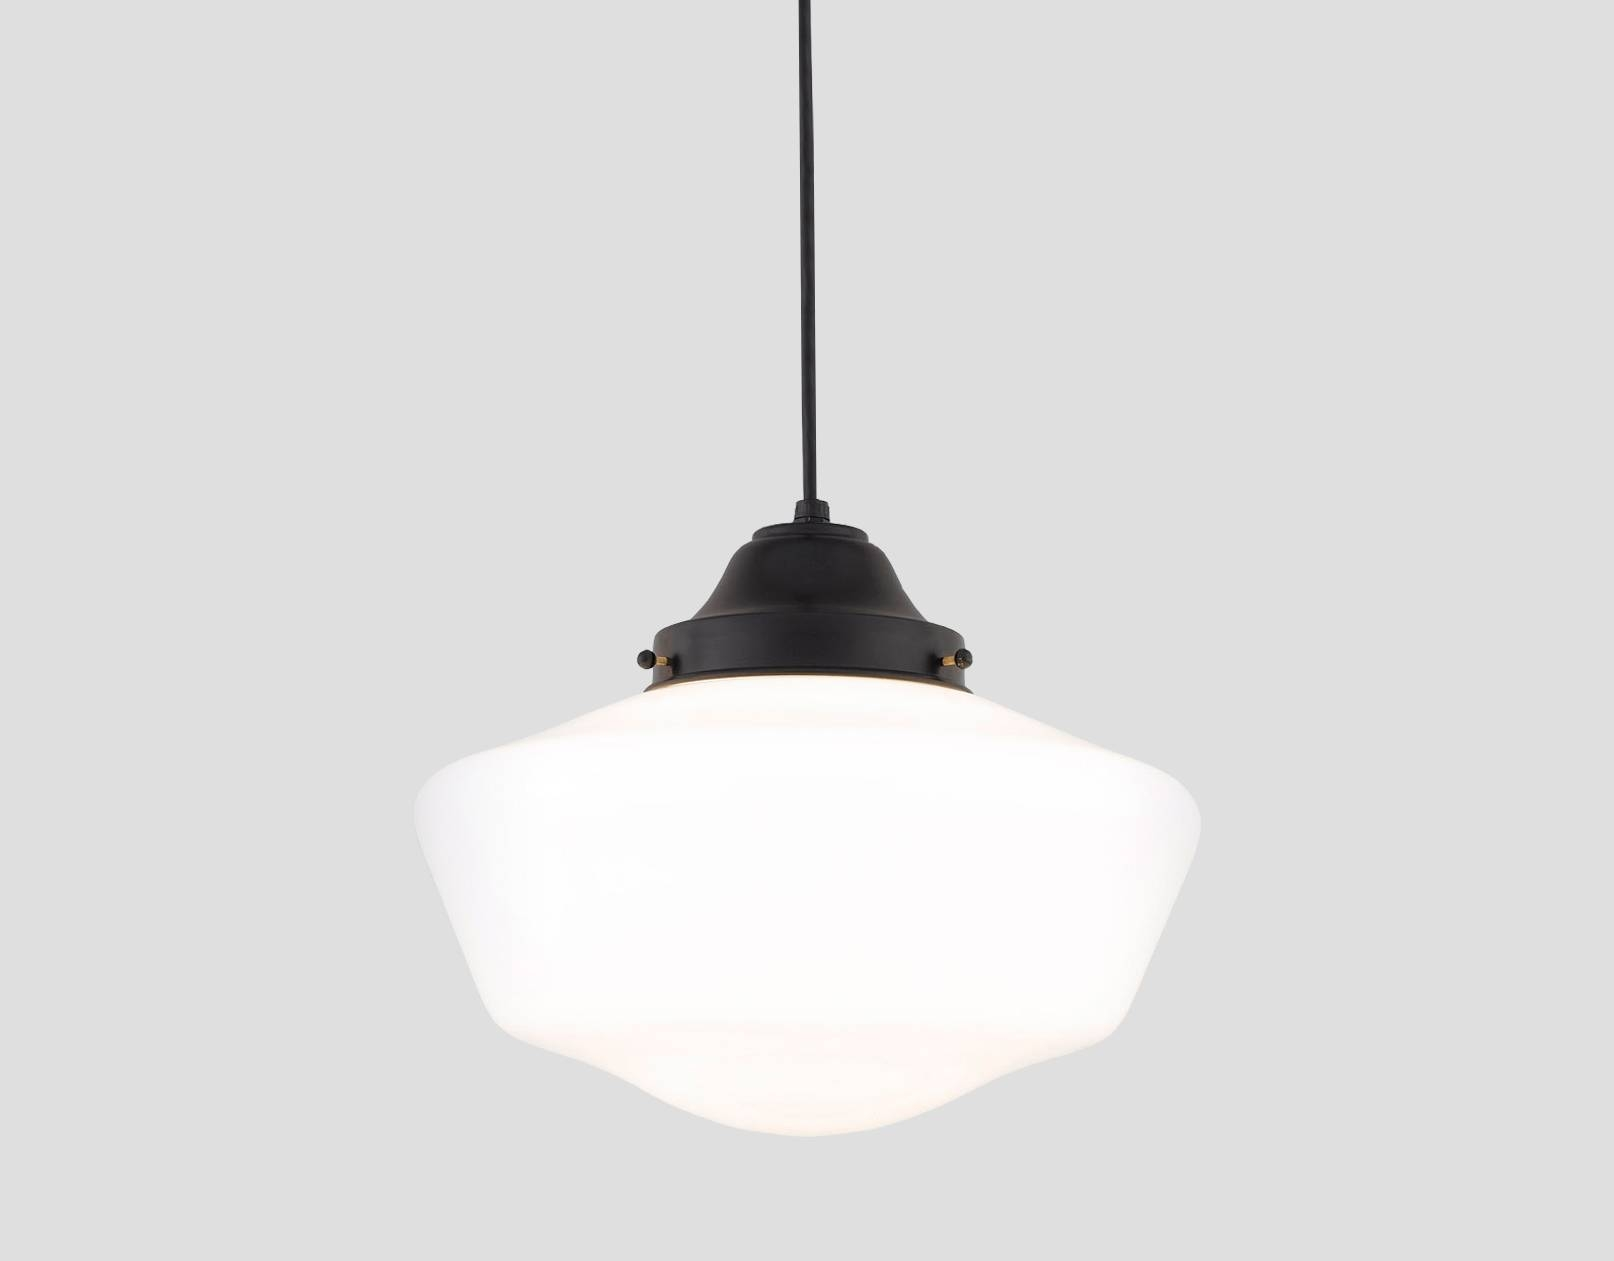 Schoolhouse Pendant Lighting | Old School Shades intended for Schoolhouse Pendant Lights Fixtures (Image 12 of 15)